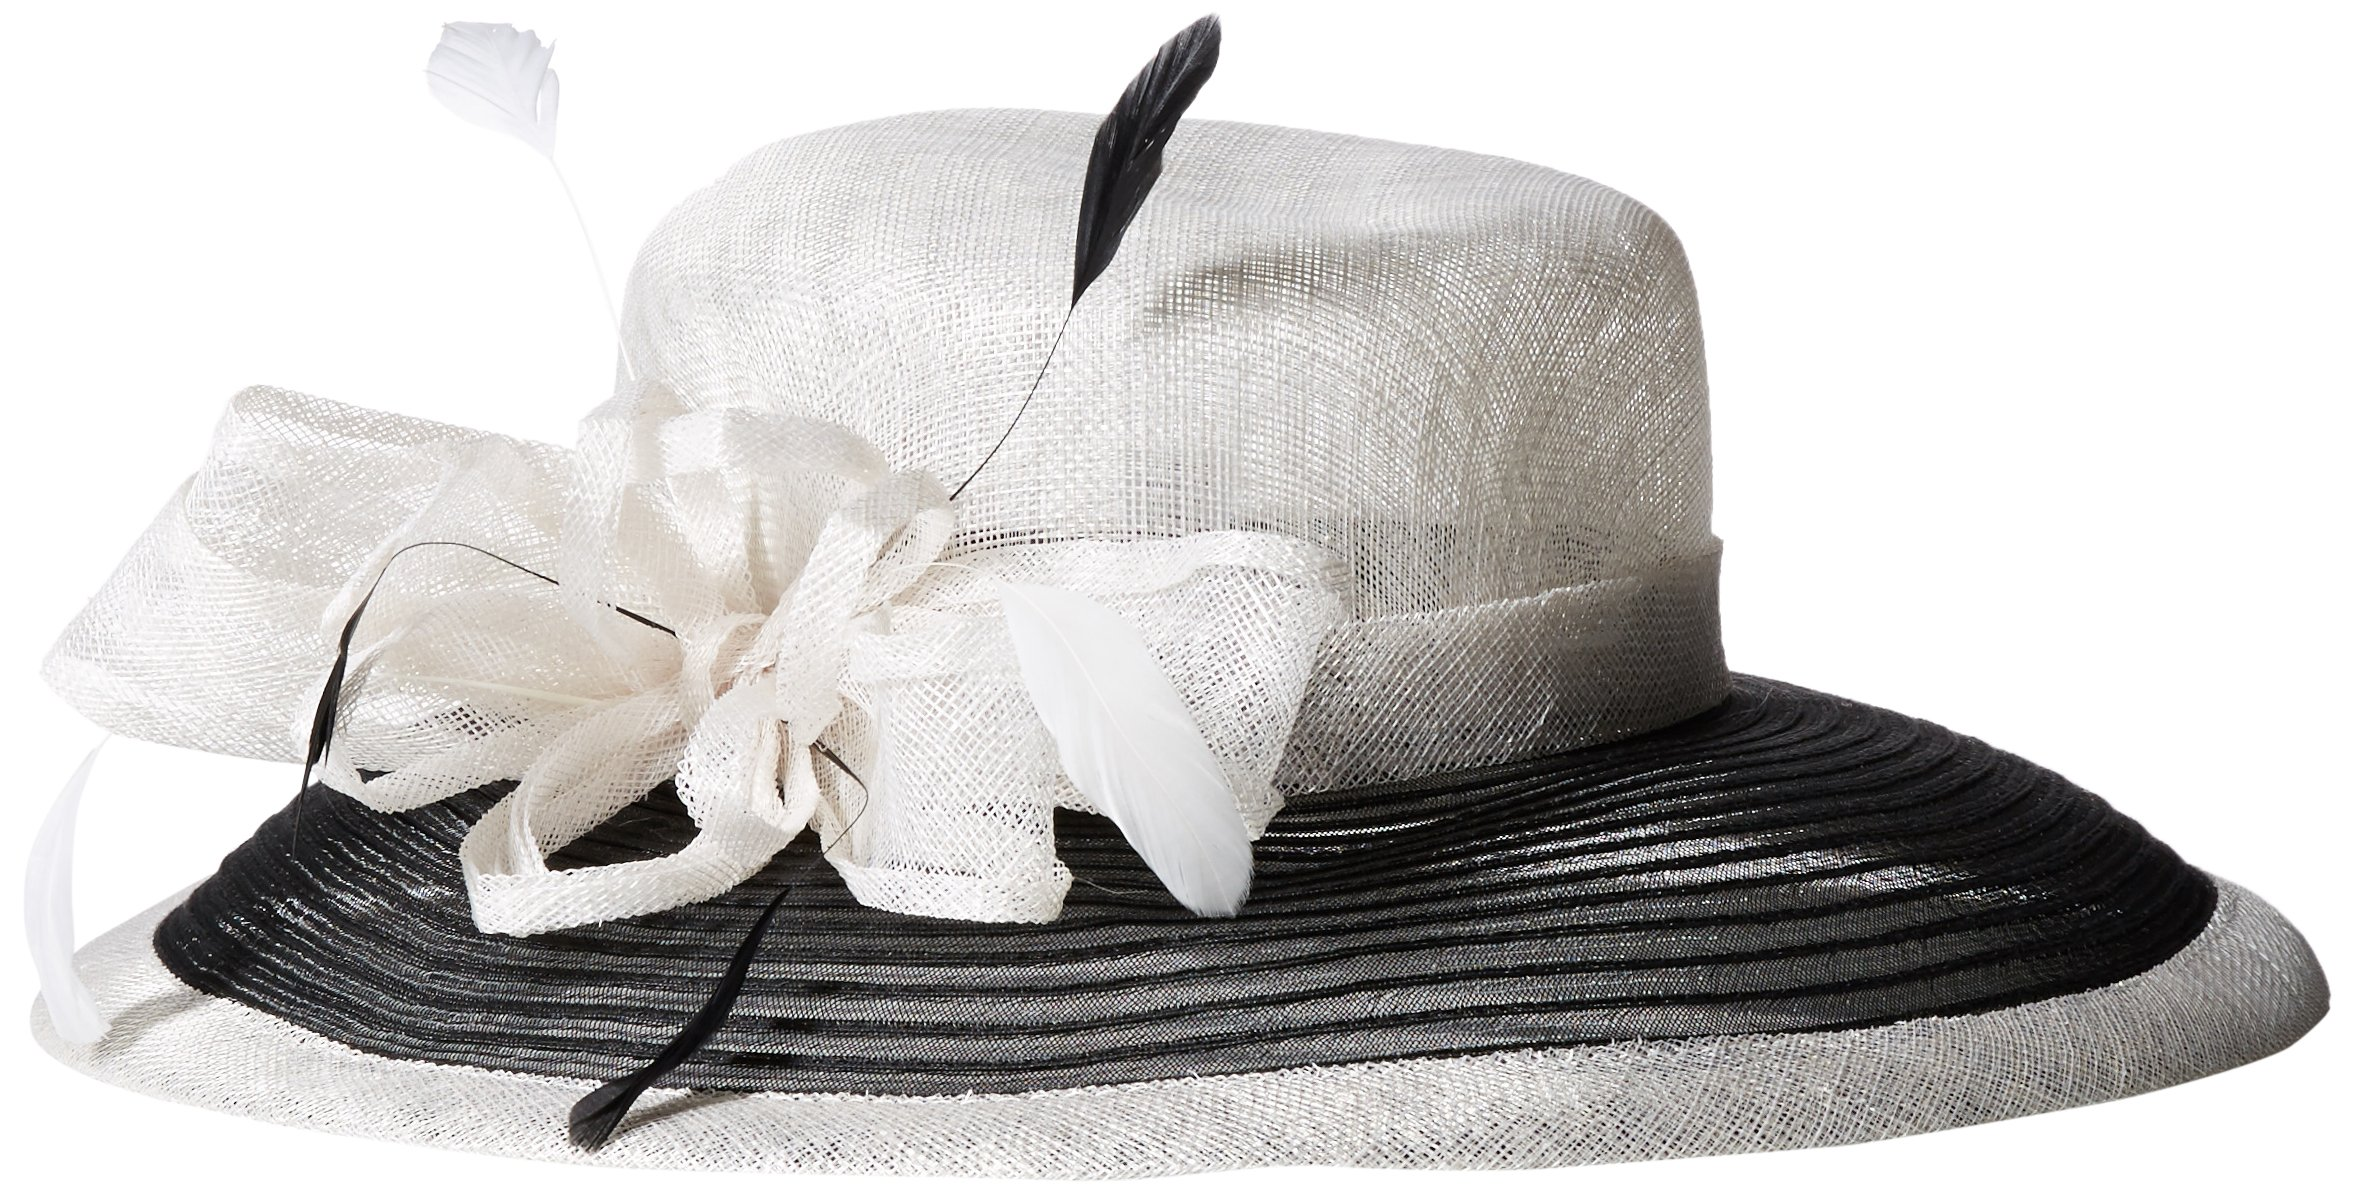 San Diego Hat Company Women's Color Block Dress Hat with Bow and Feathers, White/Black, One Size